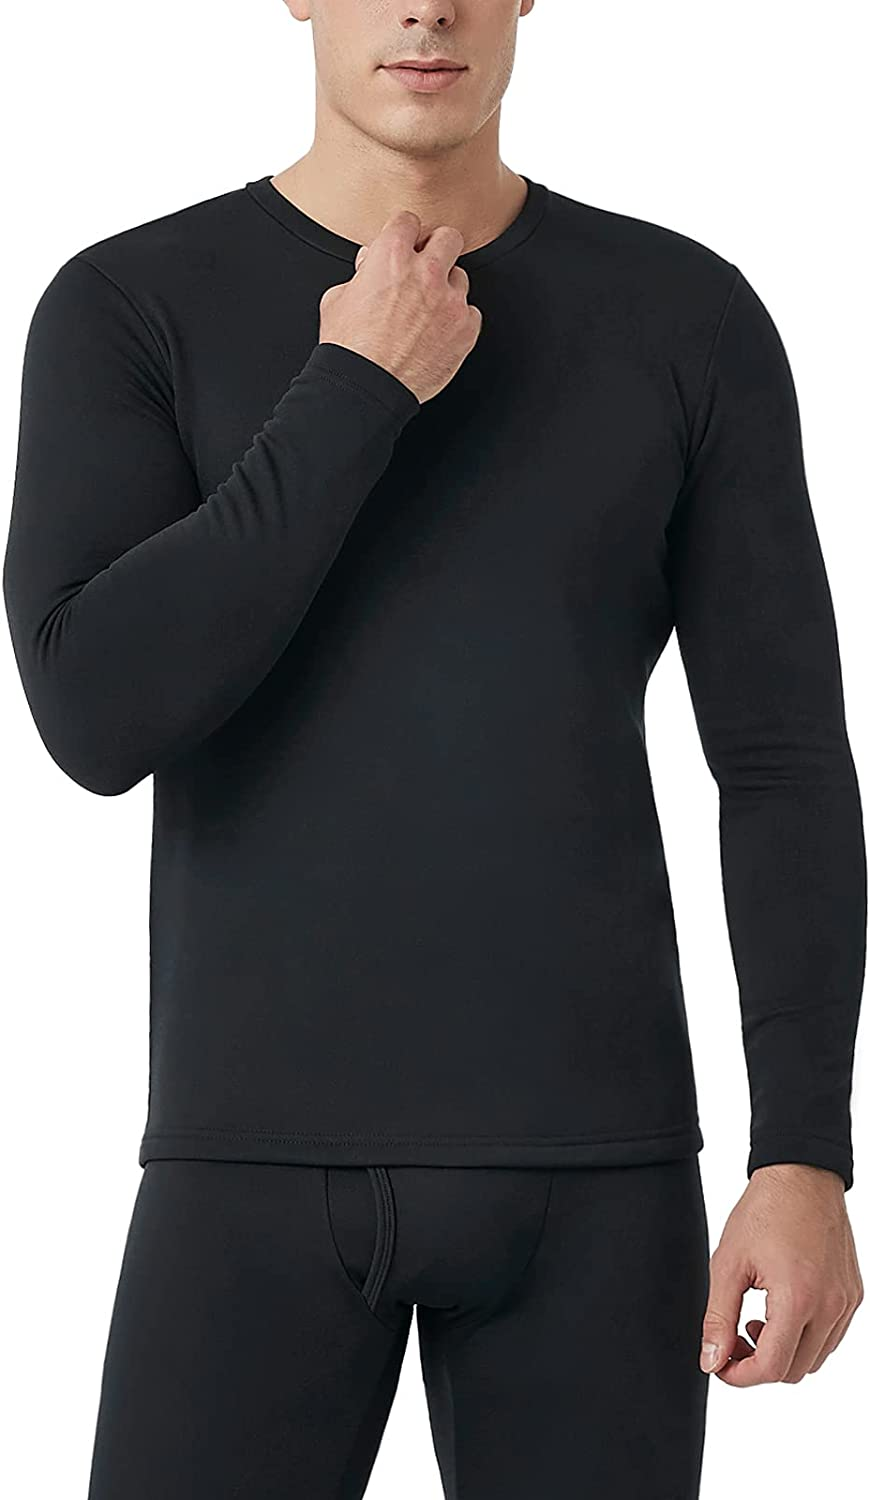 LAPASA Mens Thermal Underwear Top, Fleece Lined Long Sleeve Shirt Light/Mid/Heavy Weight 1 & 2 Packs (Thermoflux M09/M55/M26)